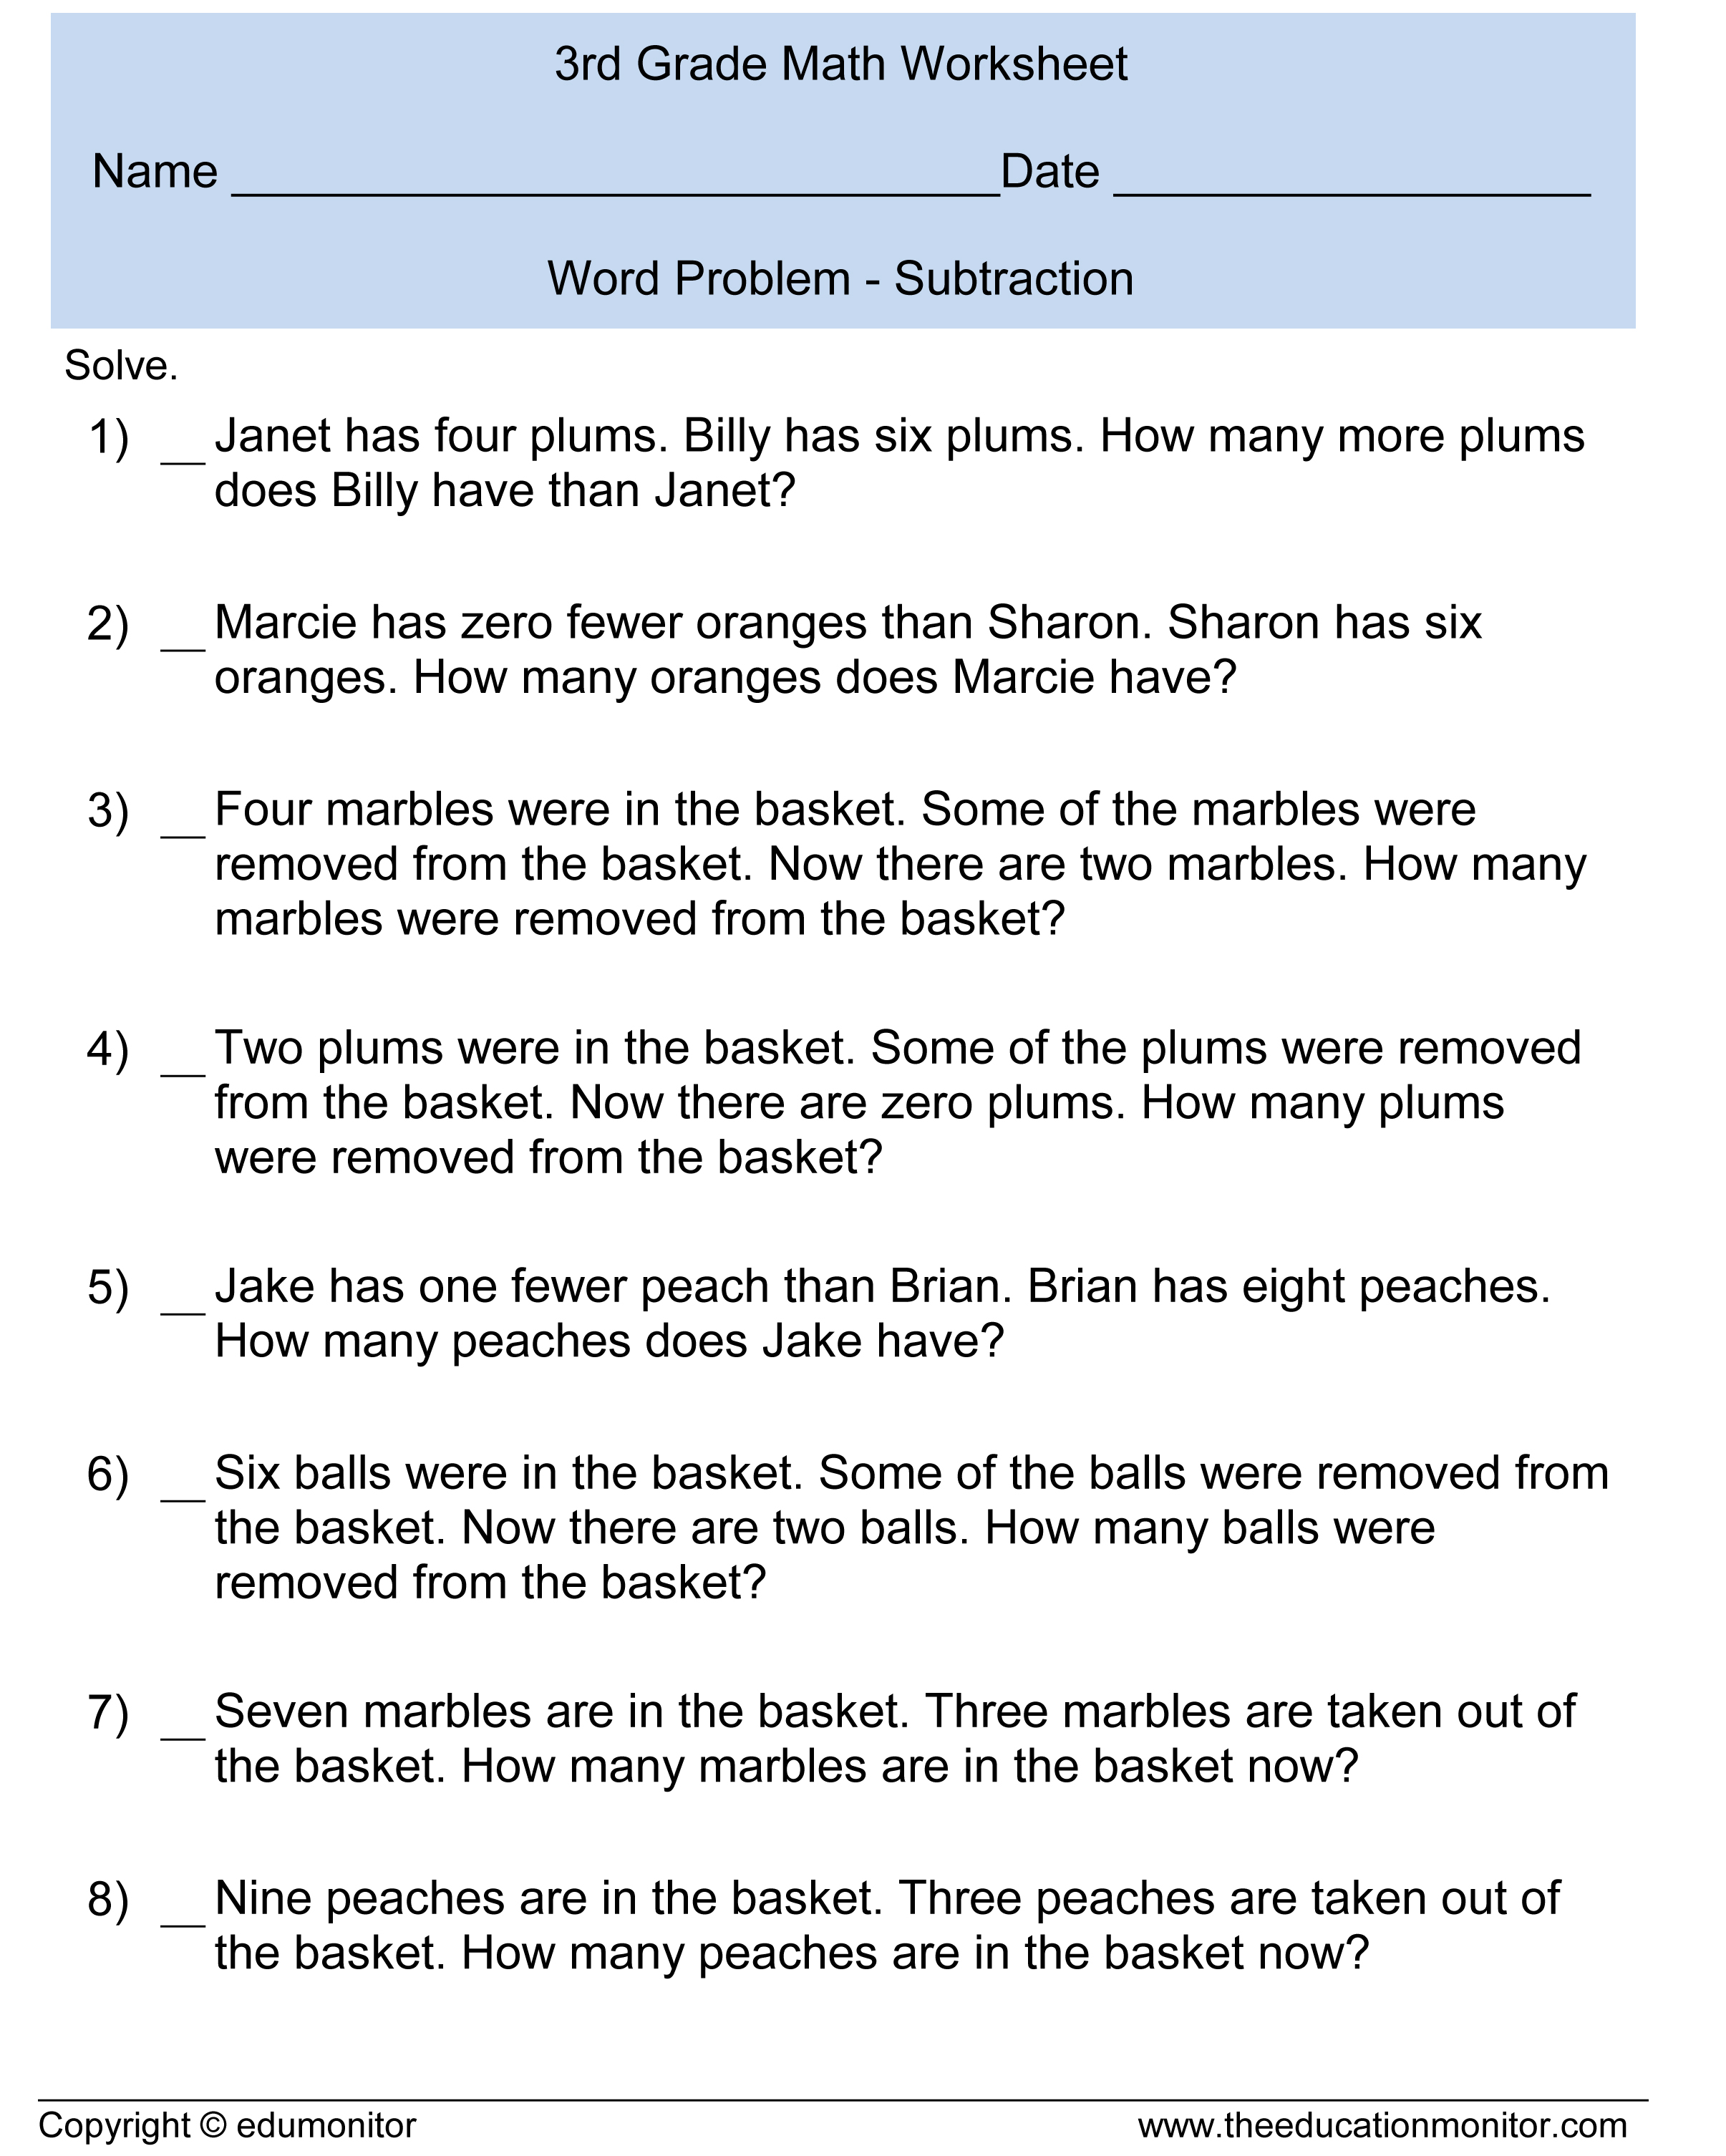 Free Math Word Problem Worksheets For 2nd Graders Parlorcreativity – 4th Grade Fraction Word Problems Worksheet